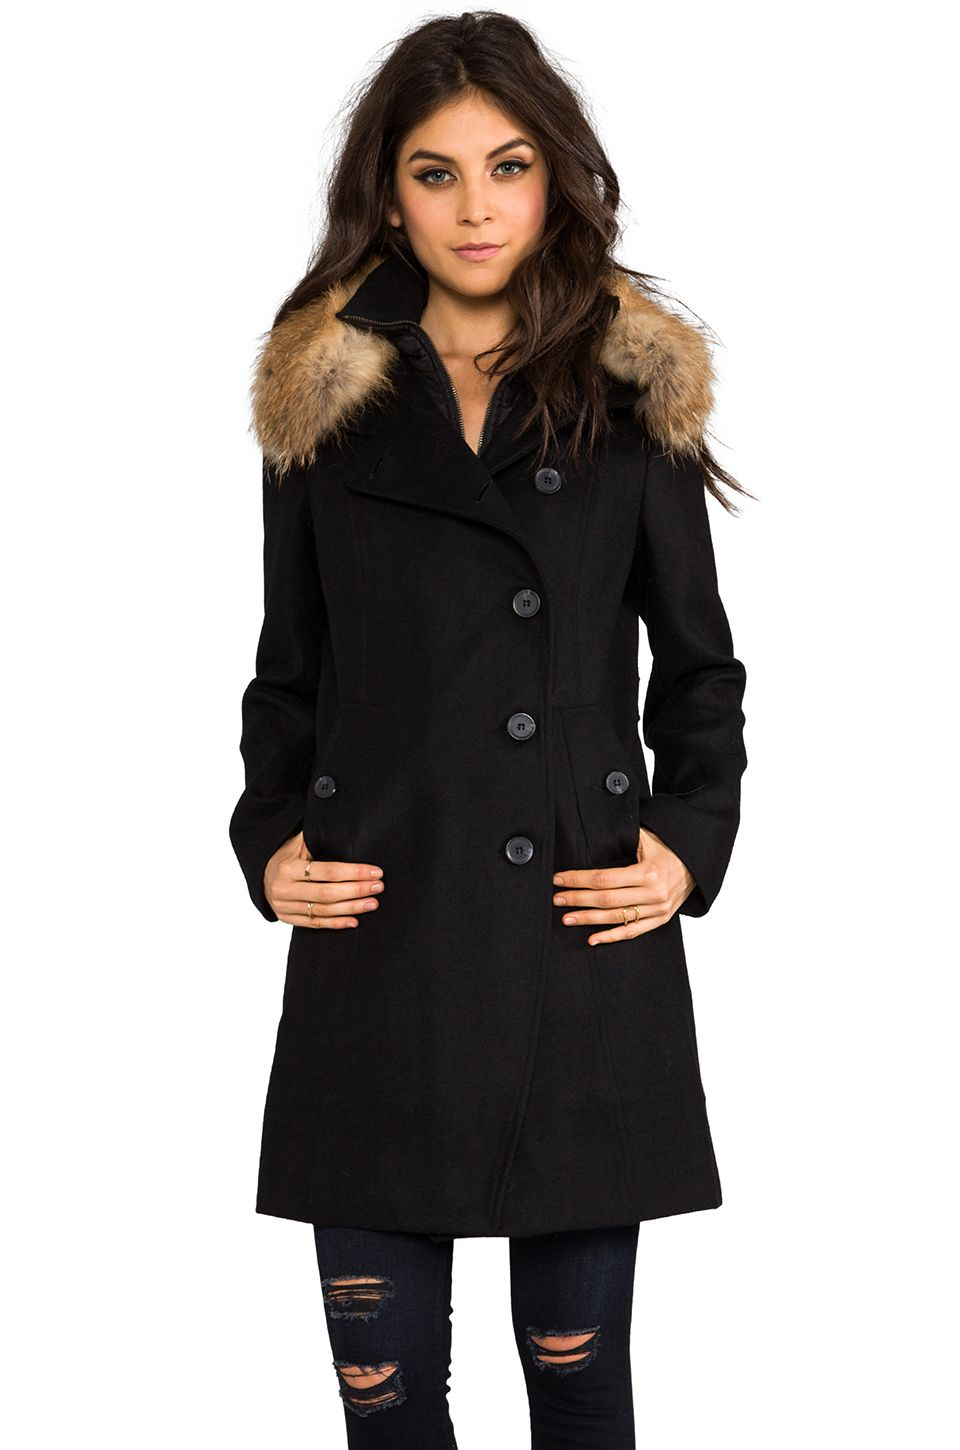 841c55b1a50 Soia   Kyo Reiko Removable Fur Trim Wool Coat in Black from REVOLVEclothing